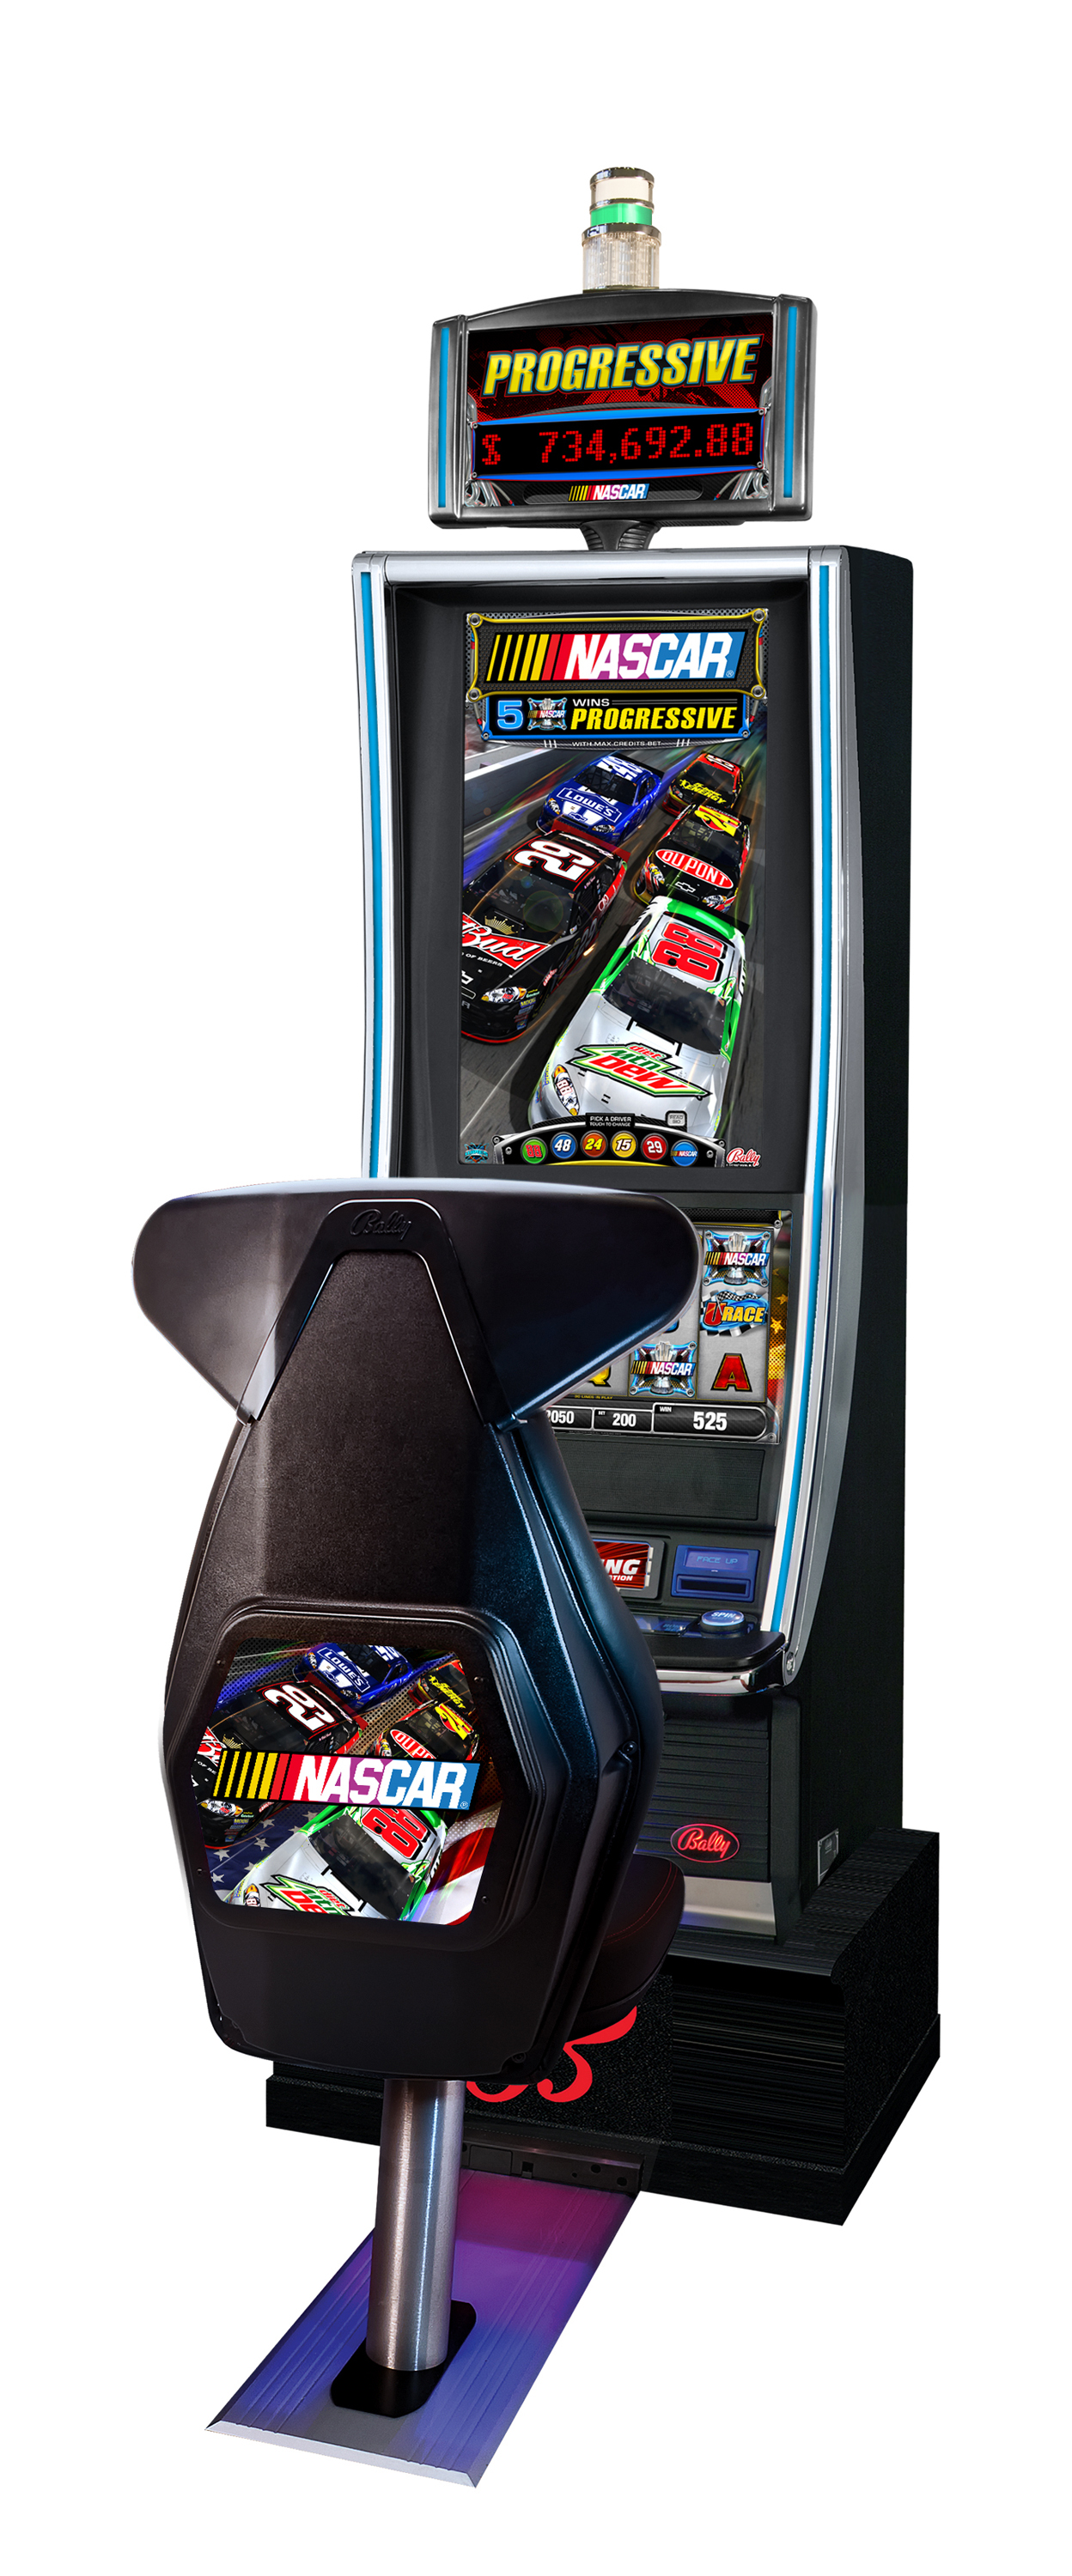 Bally Technologies To Showcase Entertaining Game Content Developed For Asia Pacific Market At G2e Asia May 21 23 In Macau Business Wire